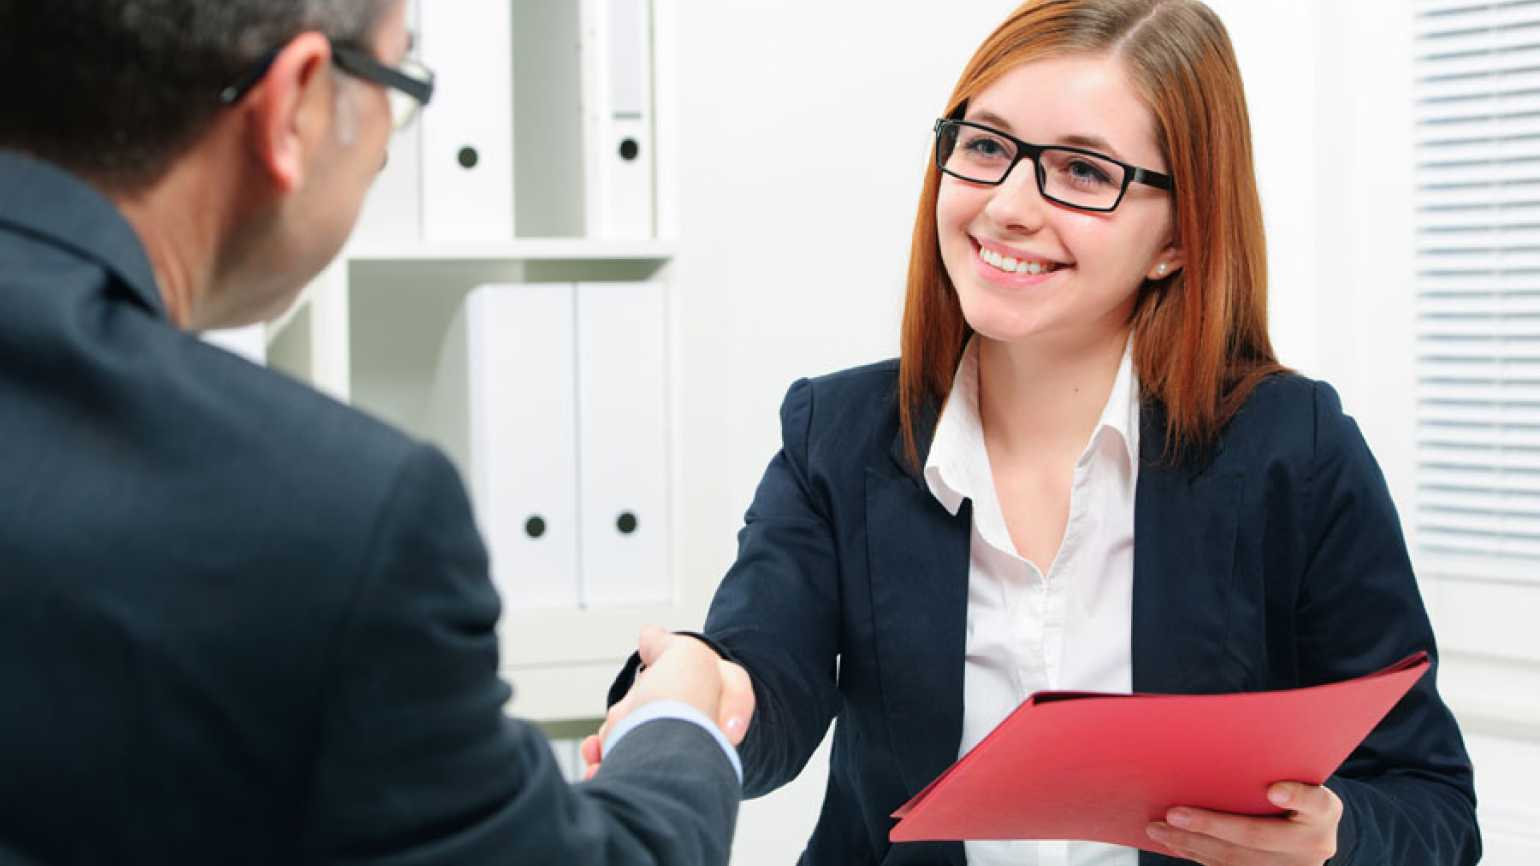 A smiling woman shakes a man's hand following a successful job interview.